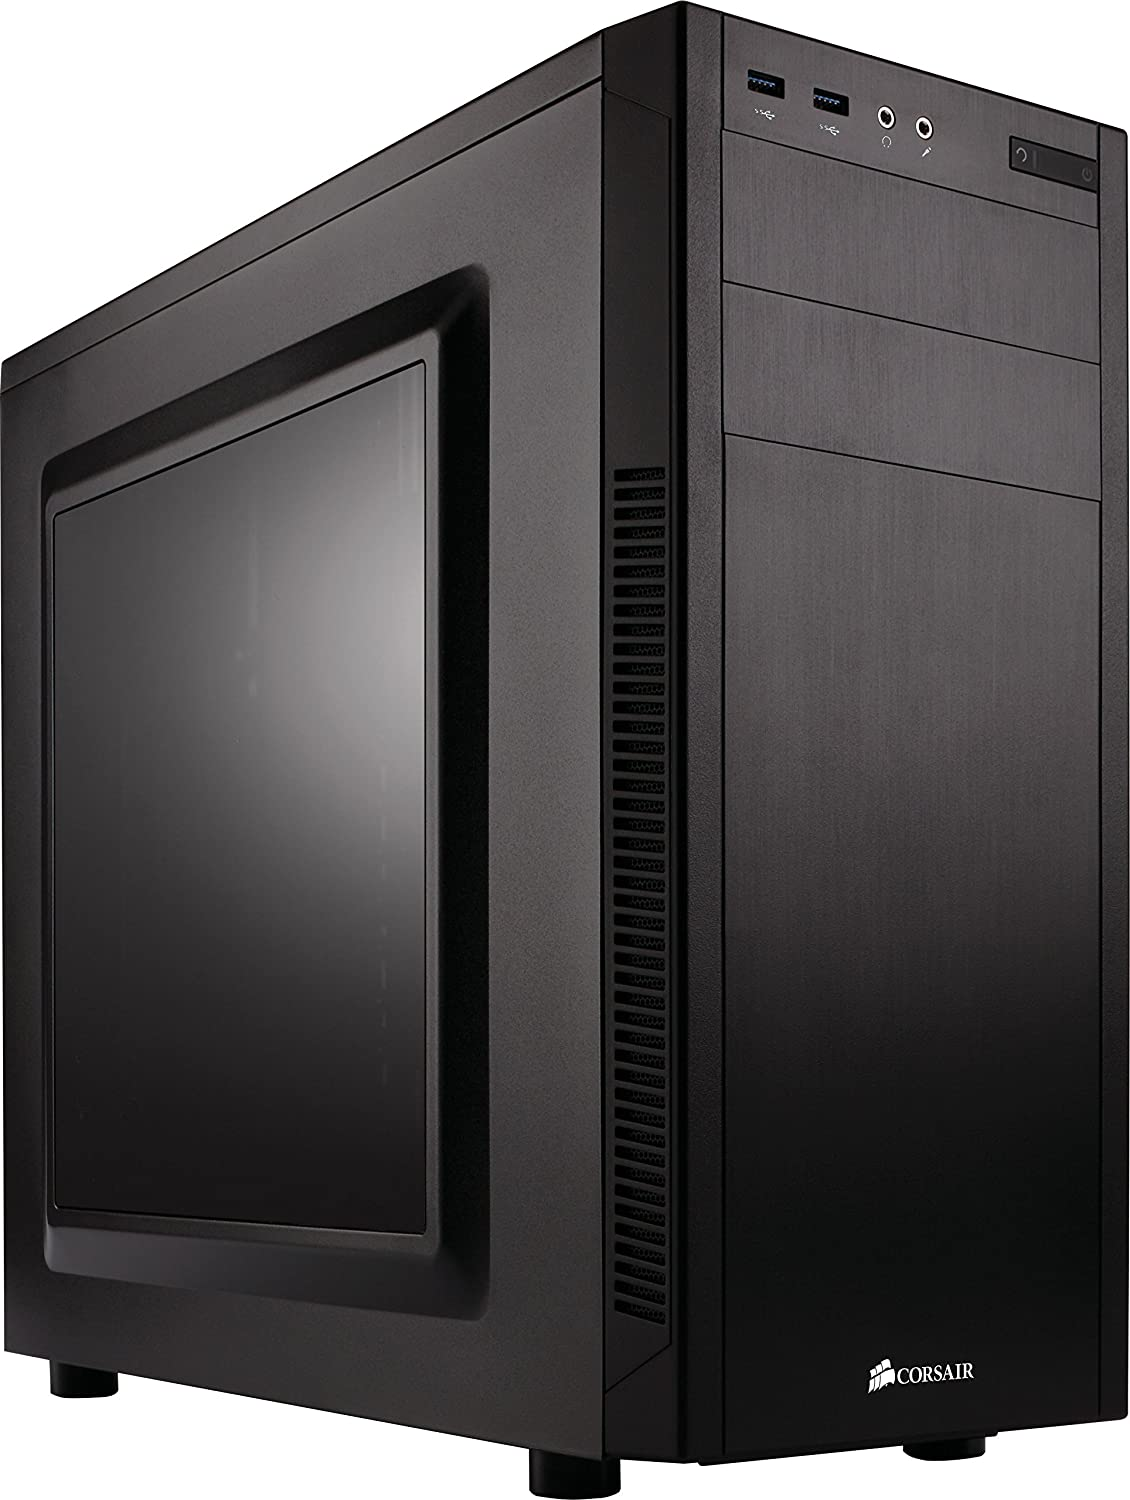 Corsair Carbide 100R Boîtier PC Gaming